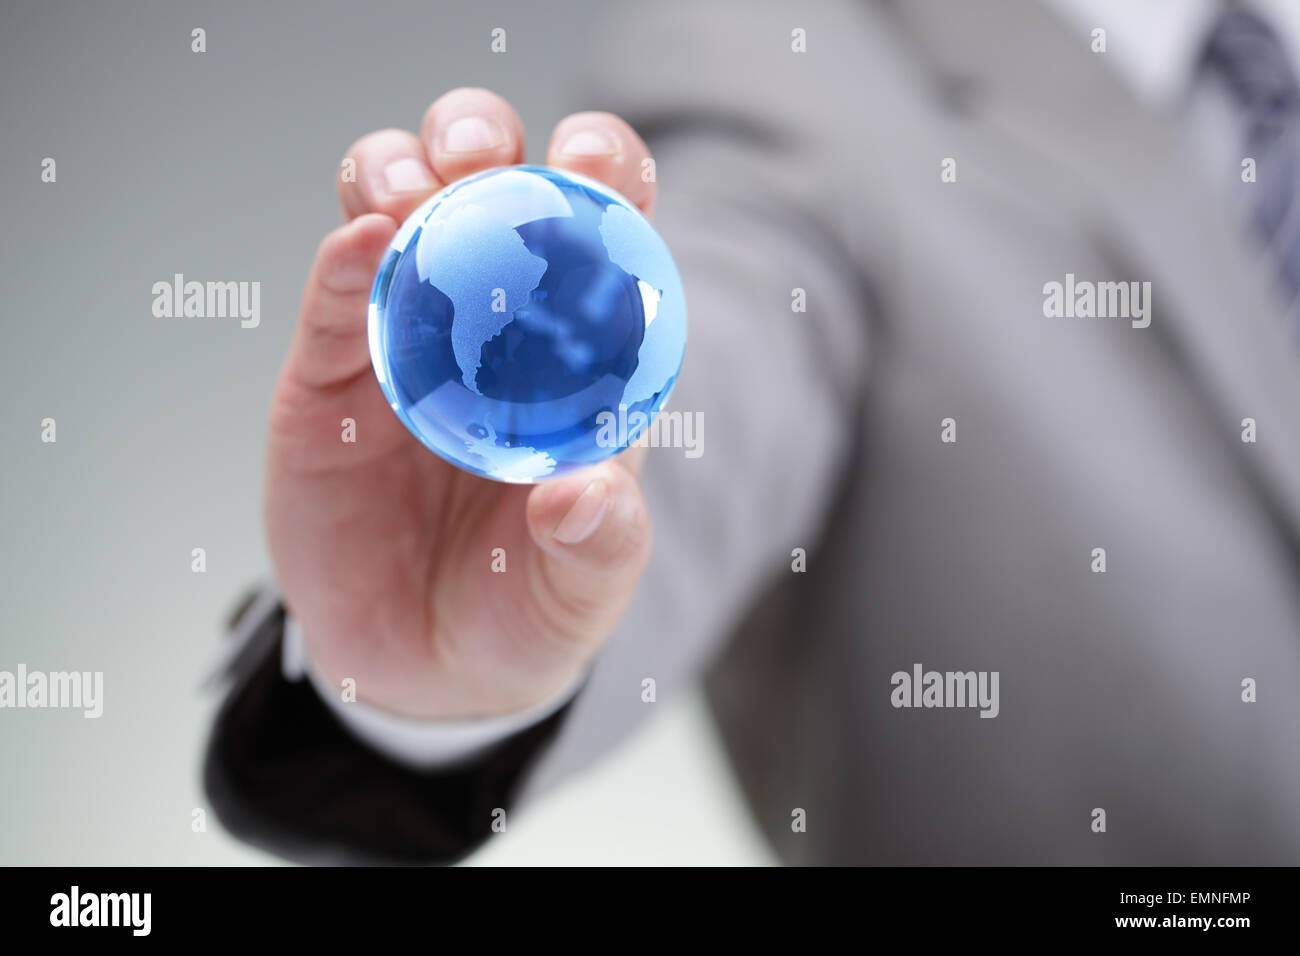 Business man holding a blue globe in his hand symbol for global business, communications or environmental conservation - Stock Image